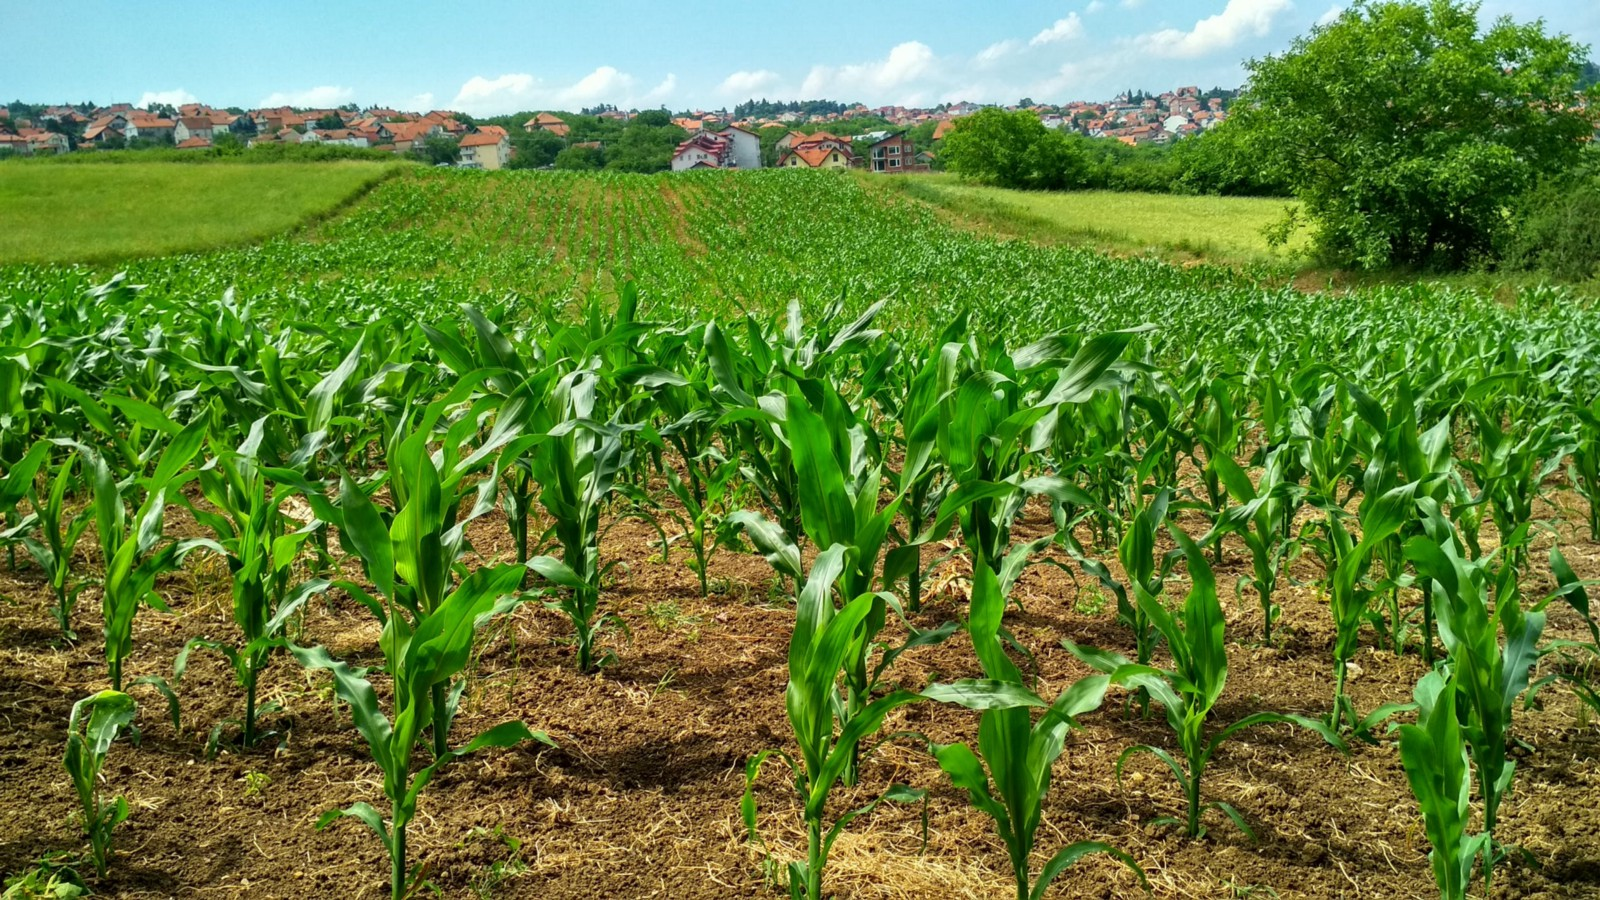 Problems and Potential in Row Crop Farming